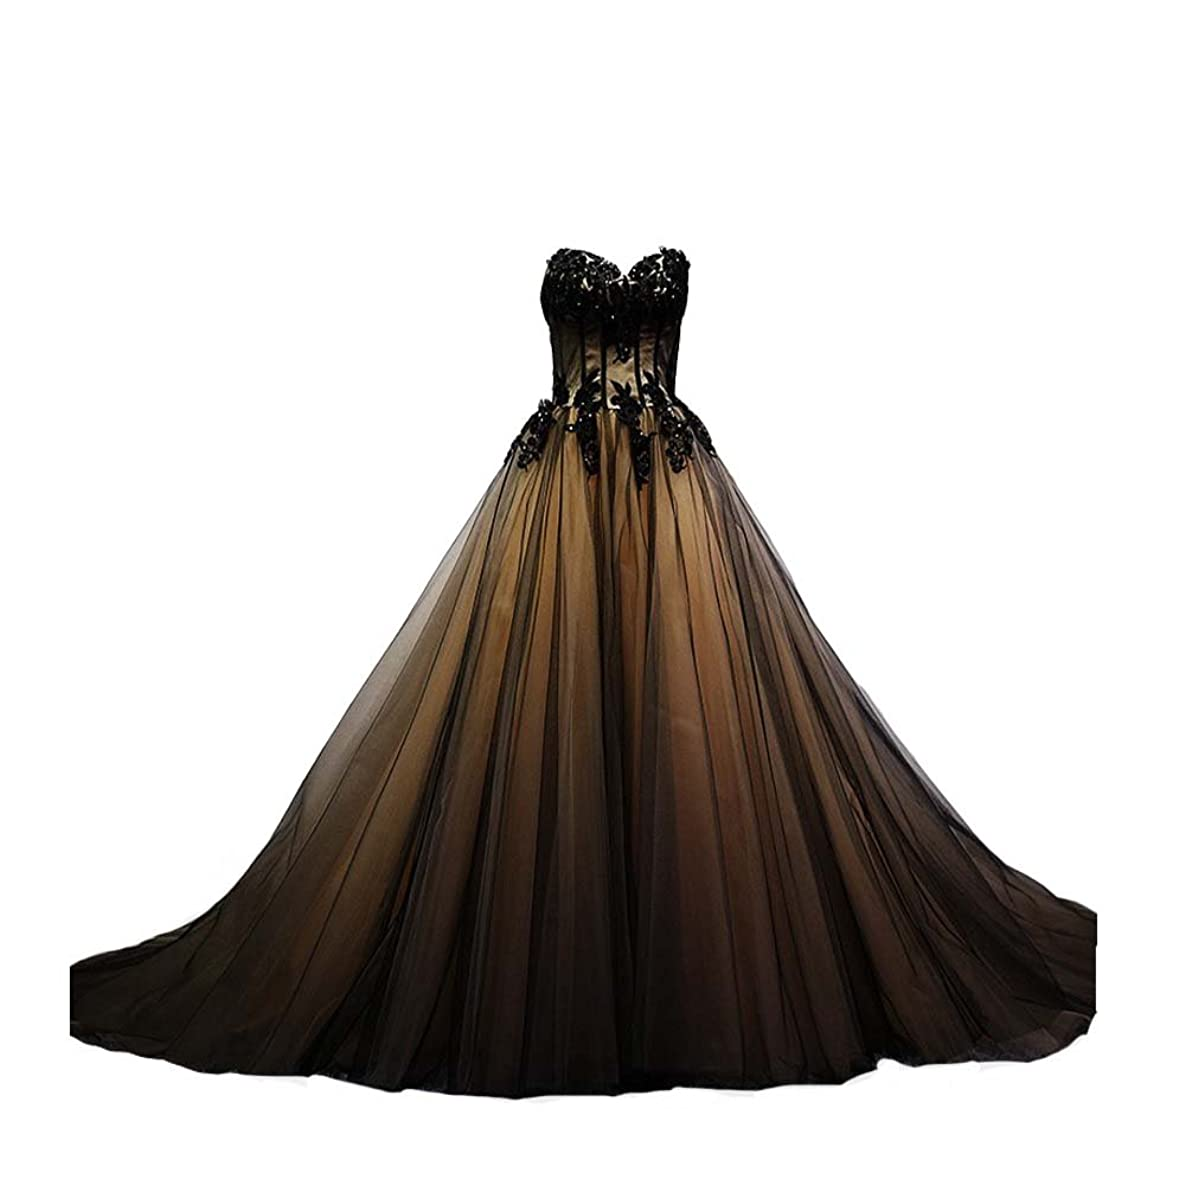 Kivary Sweetheart Black Tulle Gold Lace Corset Ball Gown Gothic Prom Wedding Dresses